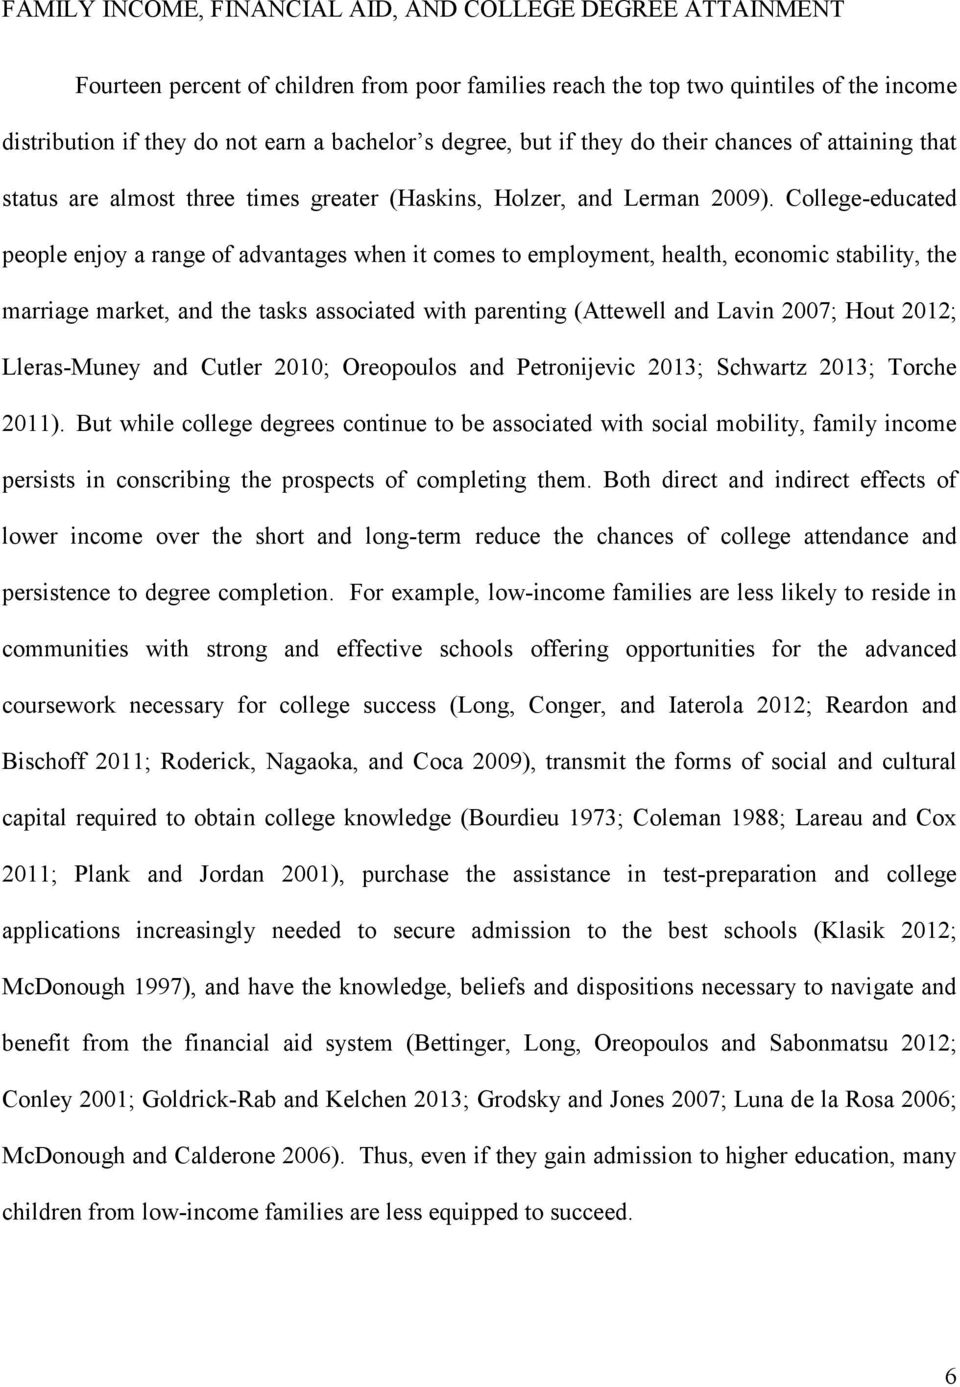 College-educated people enjoy a range of advantages when it comes to employment, health, economic stability, the marriage market, and the tasks associated with parenting (Attewell and Lavin 2007;